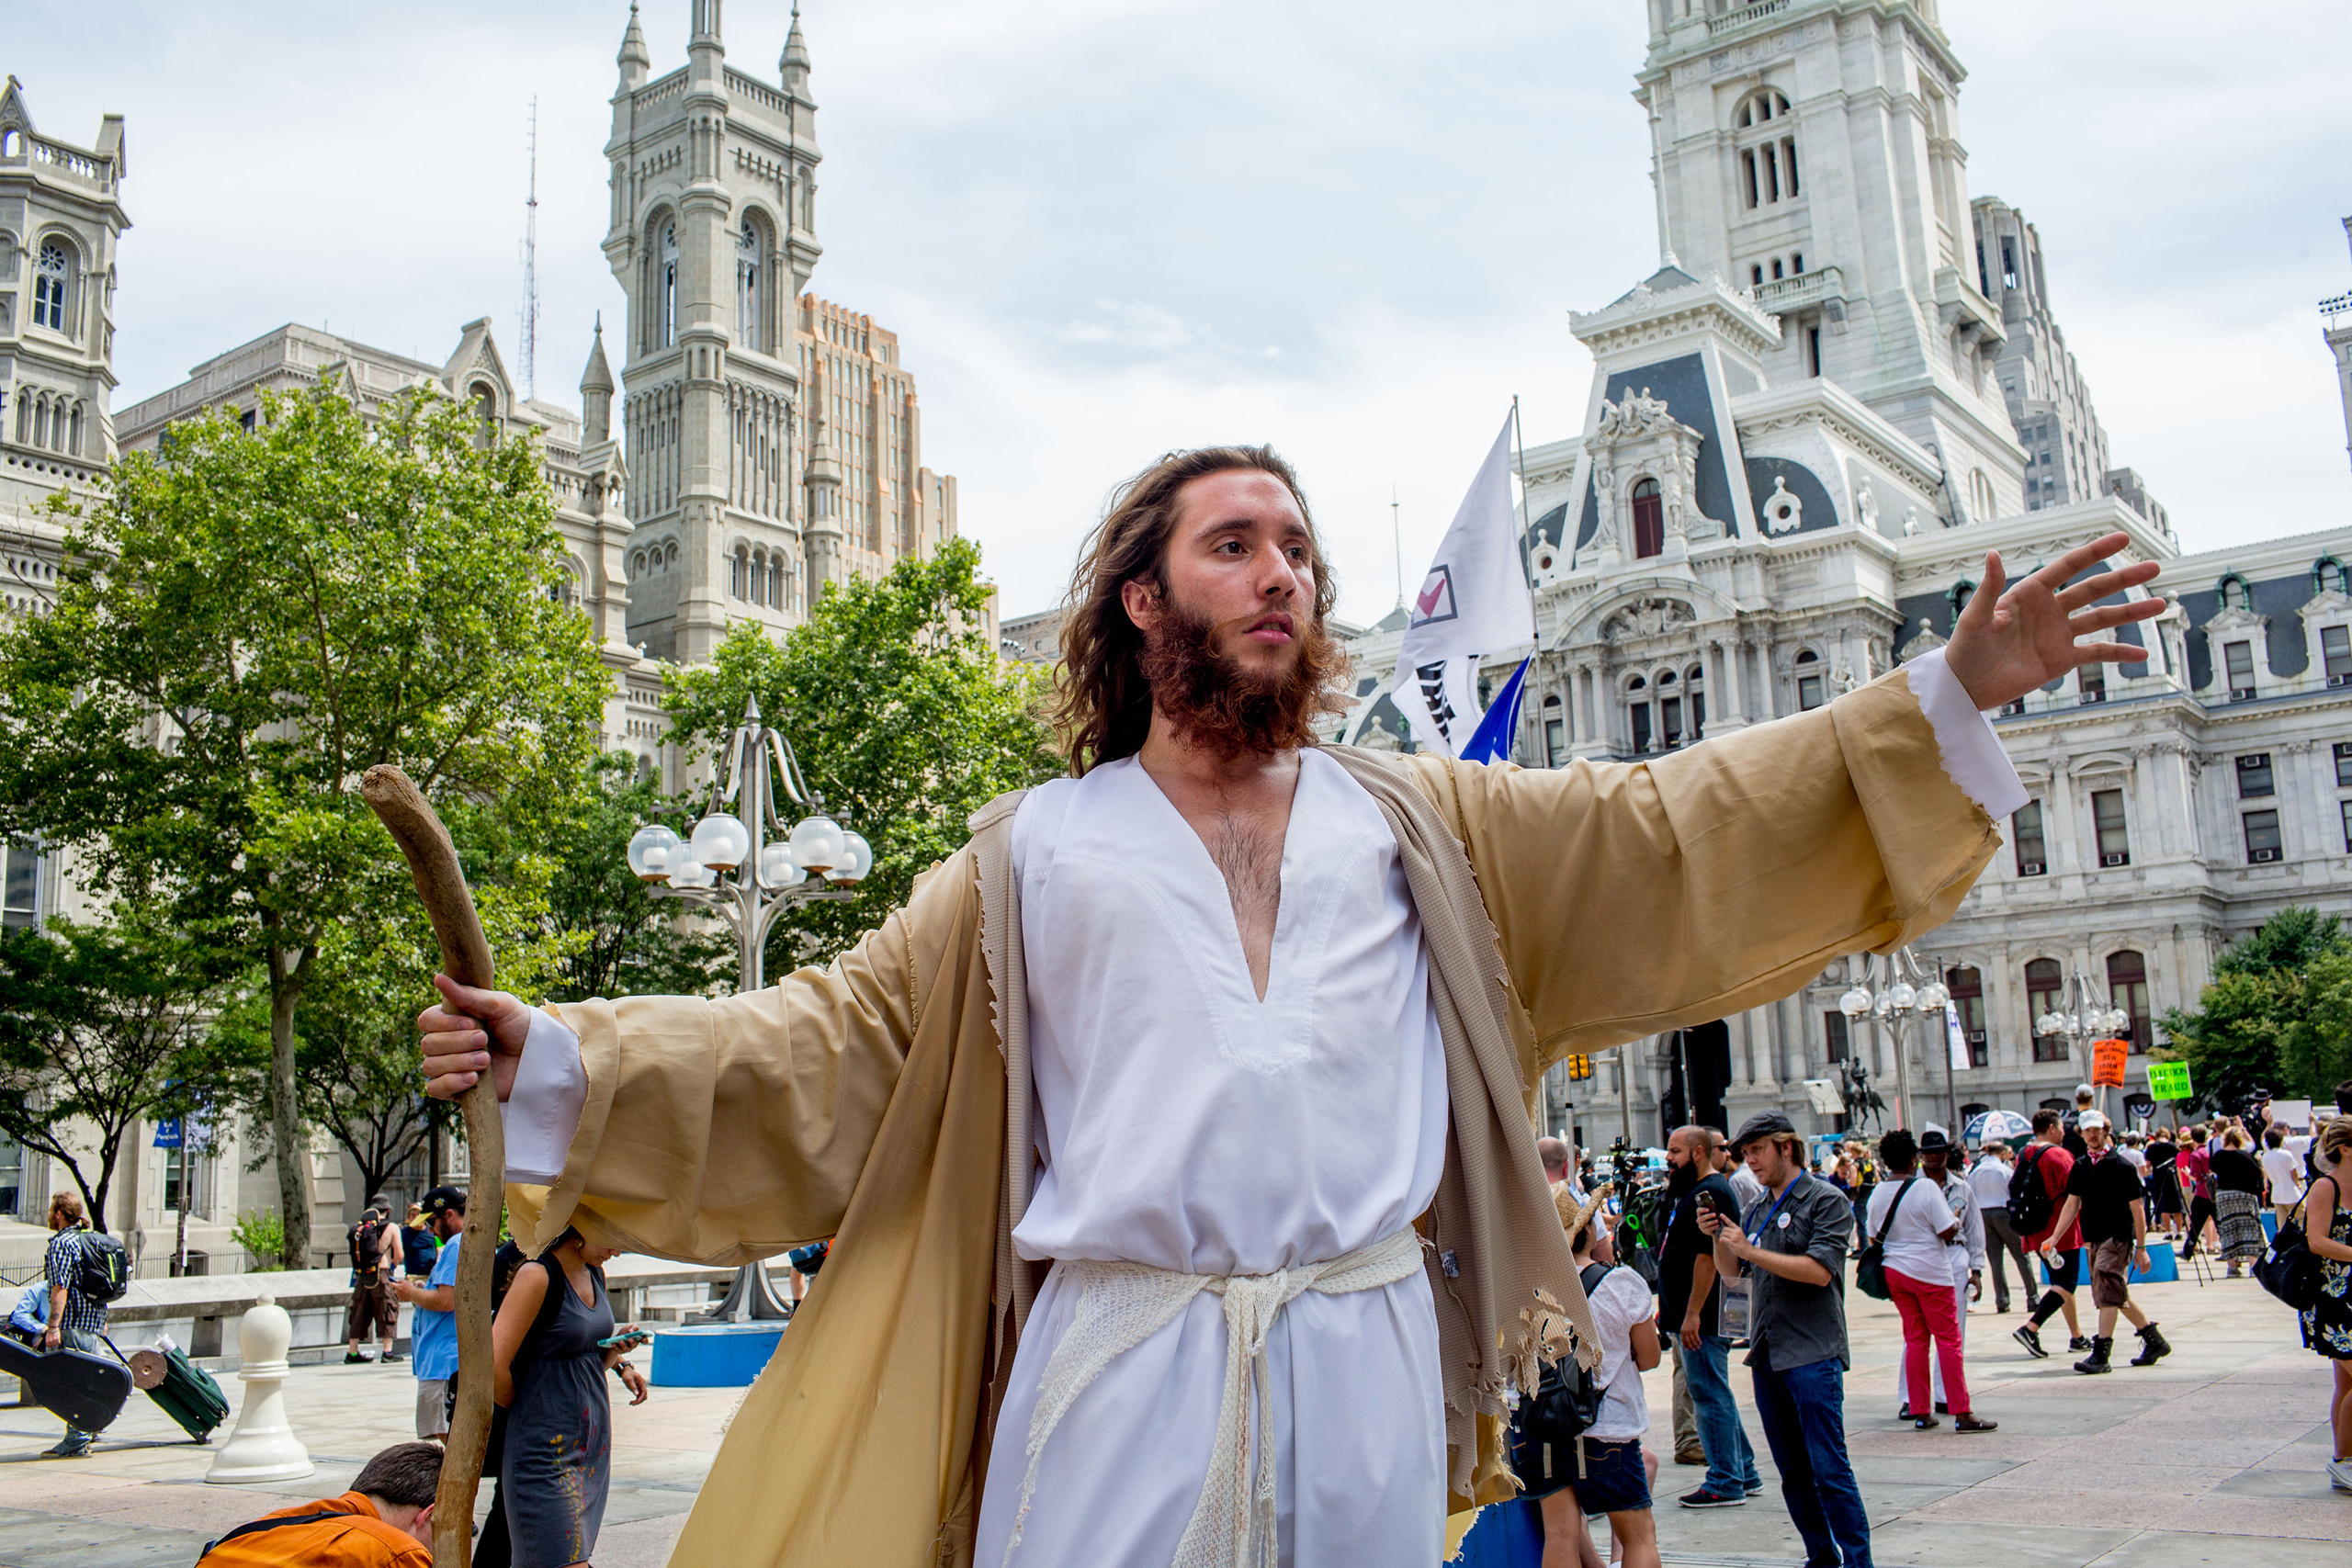 A protestor dressed like Jesus Christ near City Hall in Philadelphia on Tuesday afternoon to  protest the Democratic National Convention at the Wells Fargo Center on July 26, 2016.